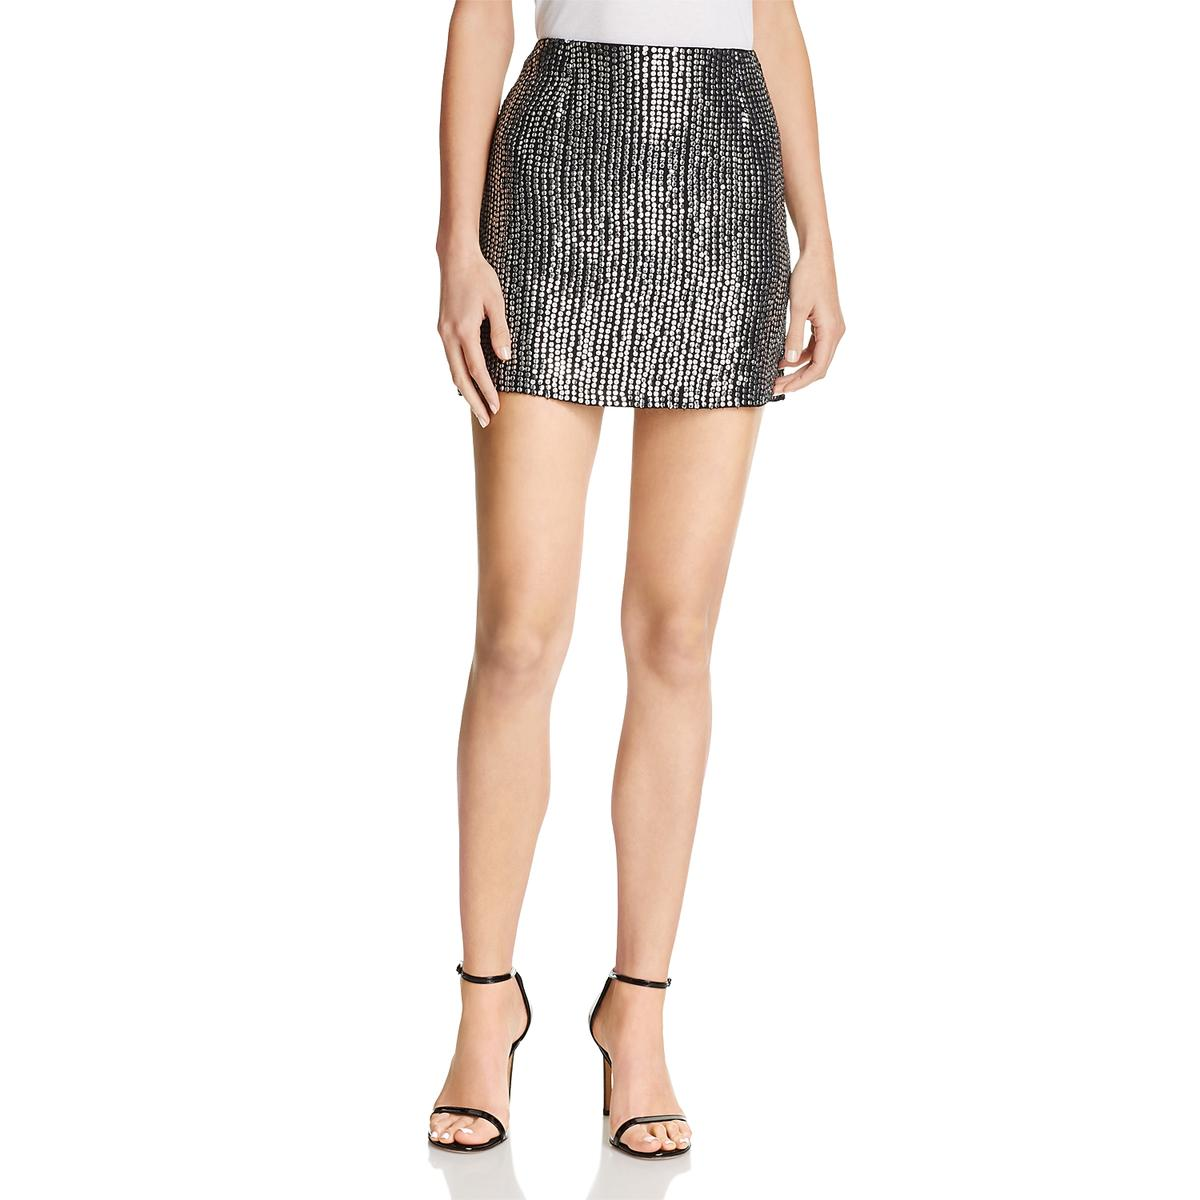 2ddb376b59 Details about French Connection Womens Desiree Black Sequin Layered Mini  Skirt 0 BHFO 8363